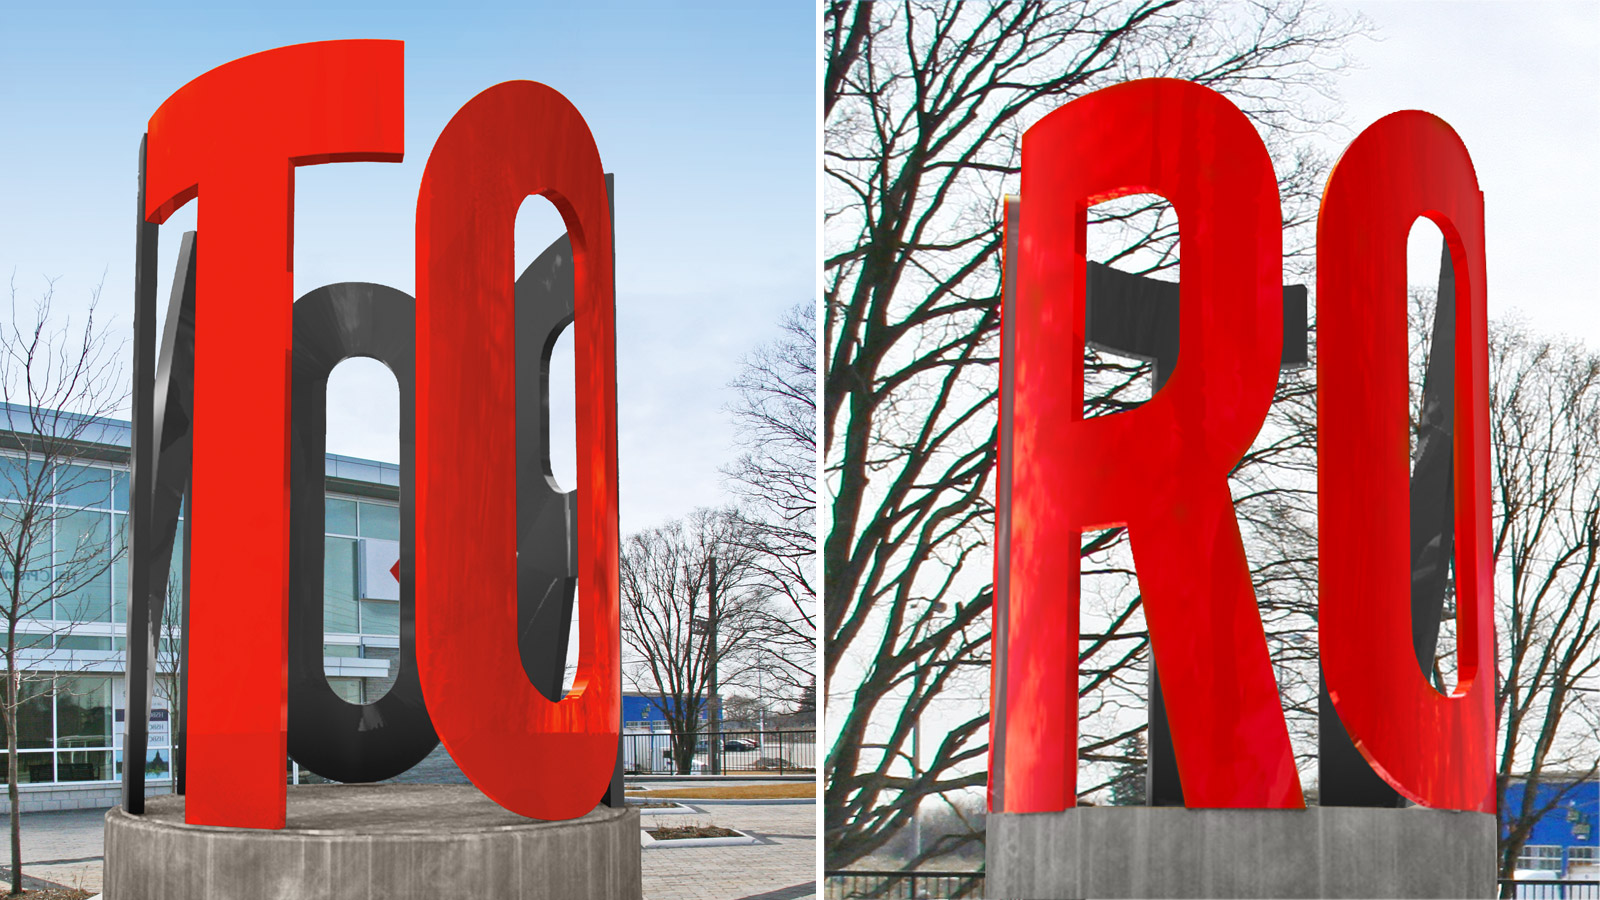 Toronto 360 | Toronto 360 Sculpture | Advertising, Brand Strategy, Design, Strategy